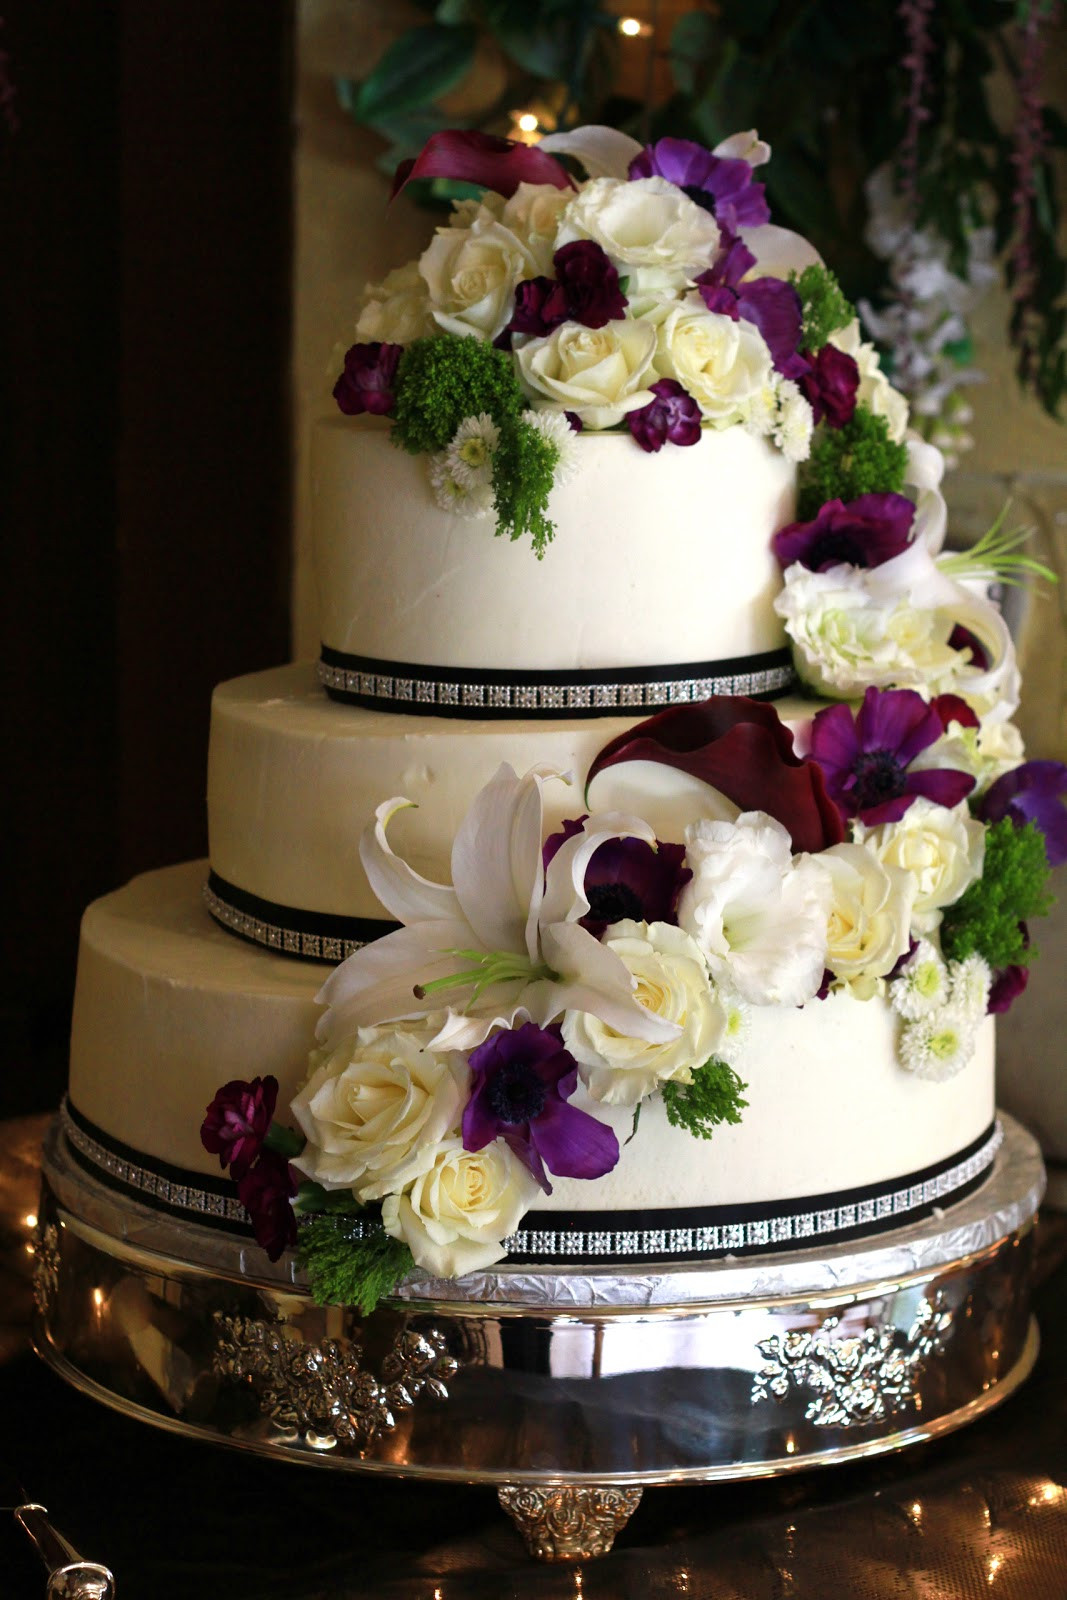 Wedding Cakes With Real Flowers  Exquisite Cookies 3 Tier wedding cake with fresh flowers